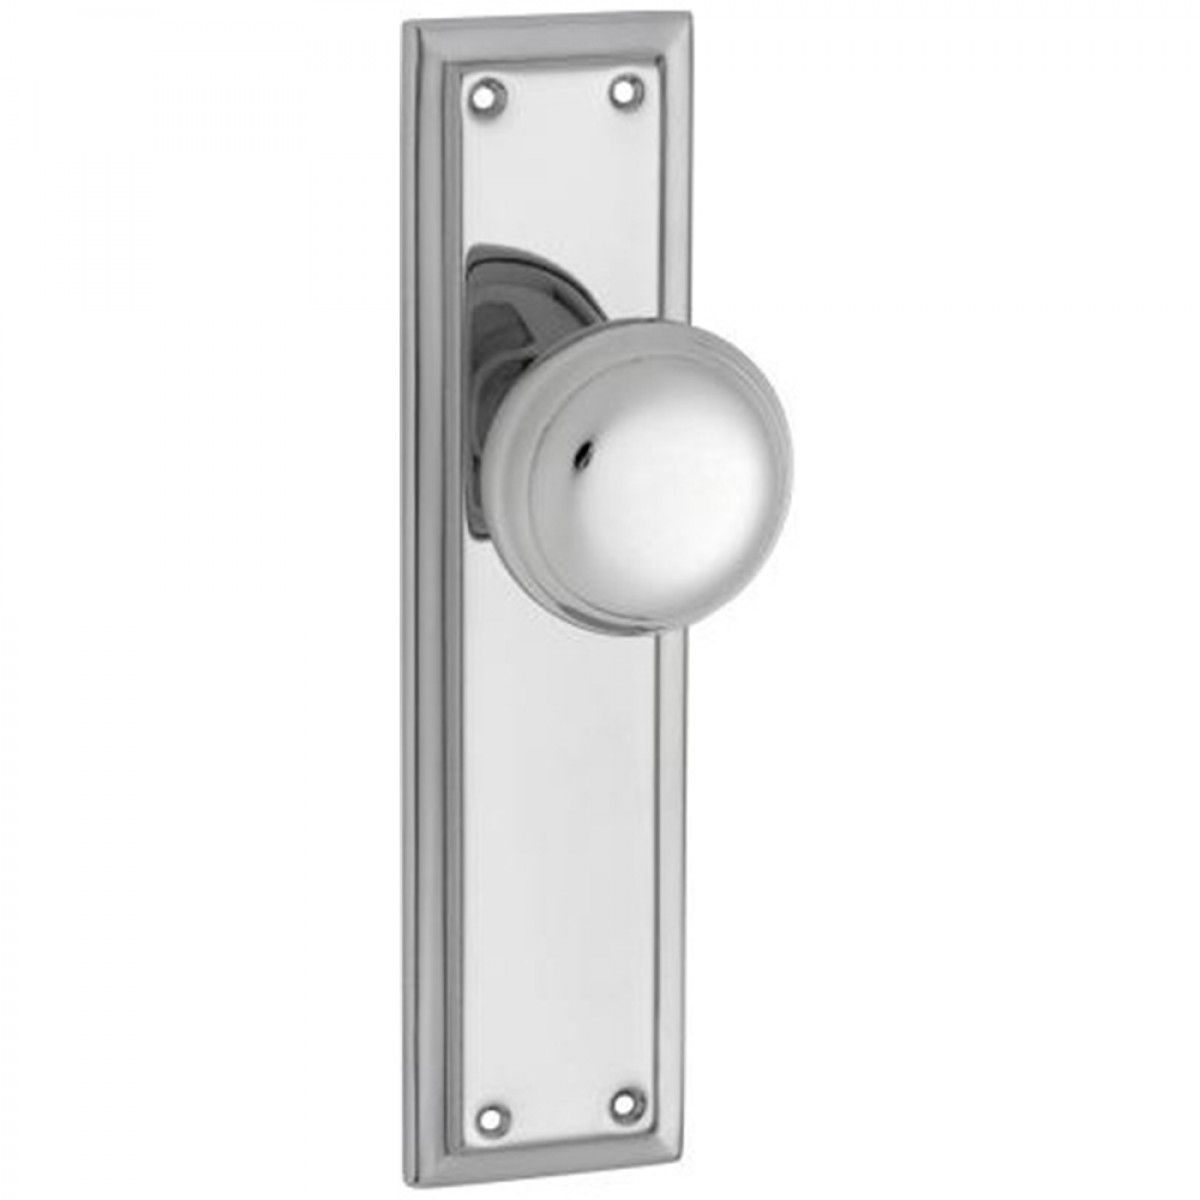 richmond knob lock sb cp handles door furniture hardware